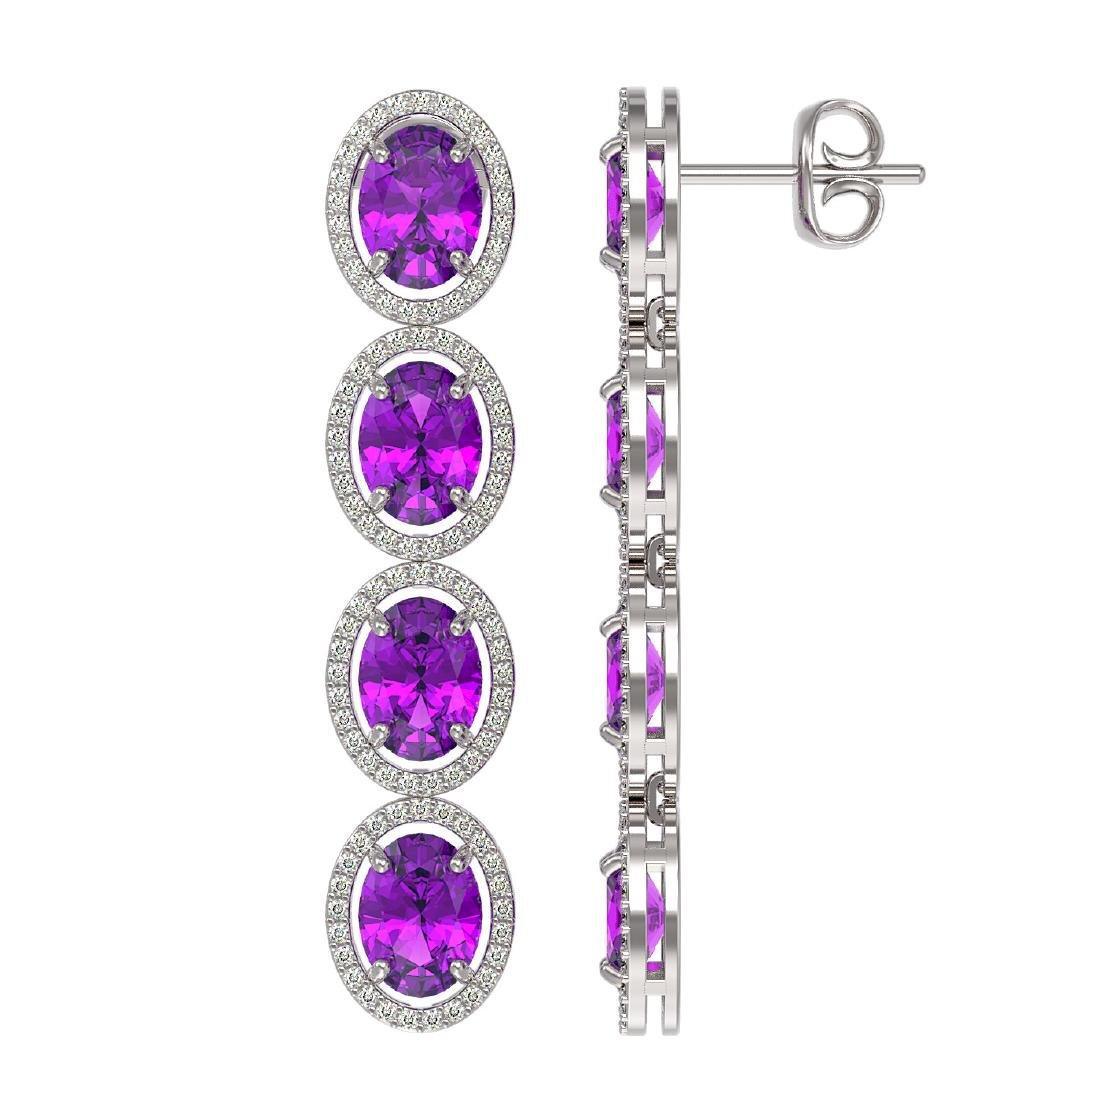 12.36 CTW Amethyst & Diamond Halo Earrings 10K White - 2